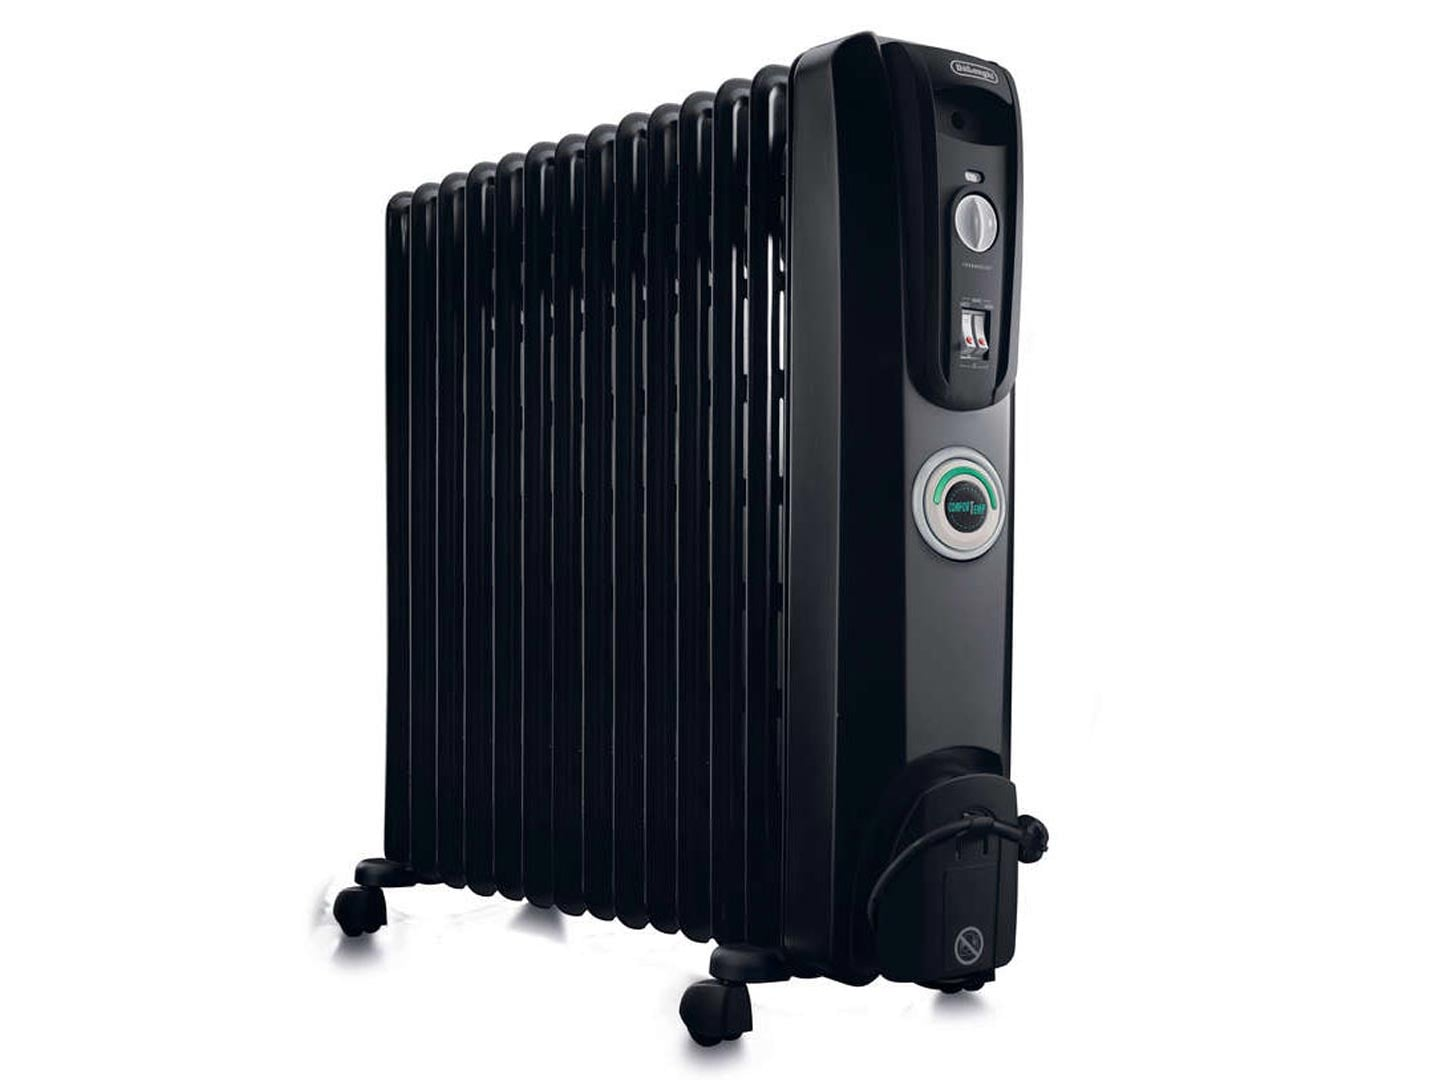 Hor Kh771430cb Oil Heater From Delonghi South Africa Heaters